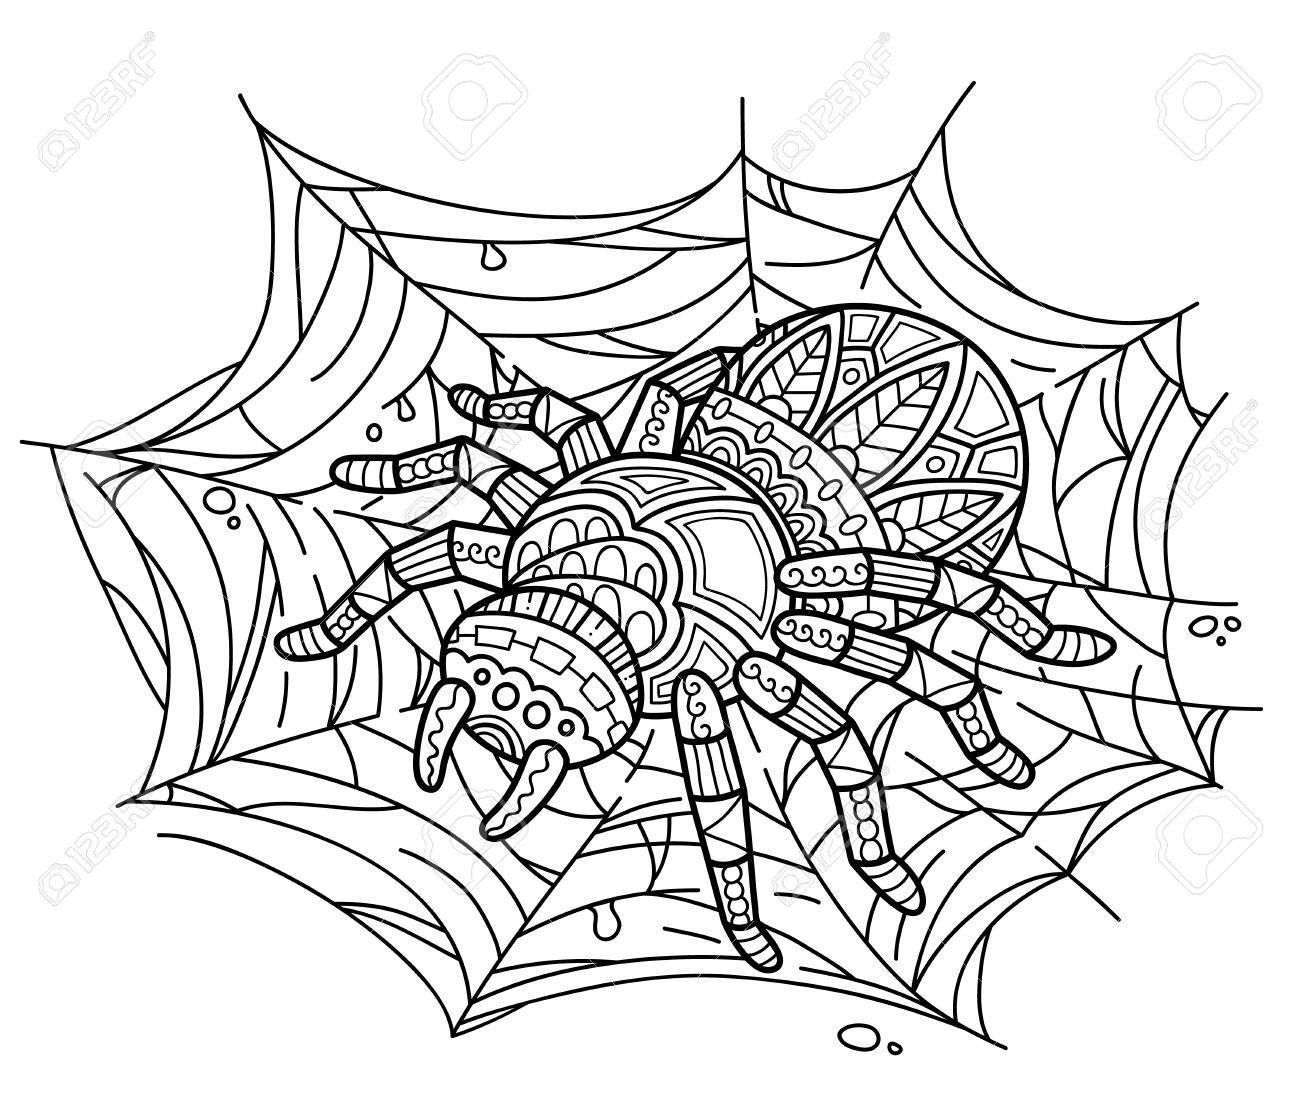 Cute Spider On Web Vector Illustration Of Ornate Zentangle For Children Or